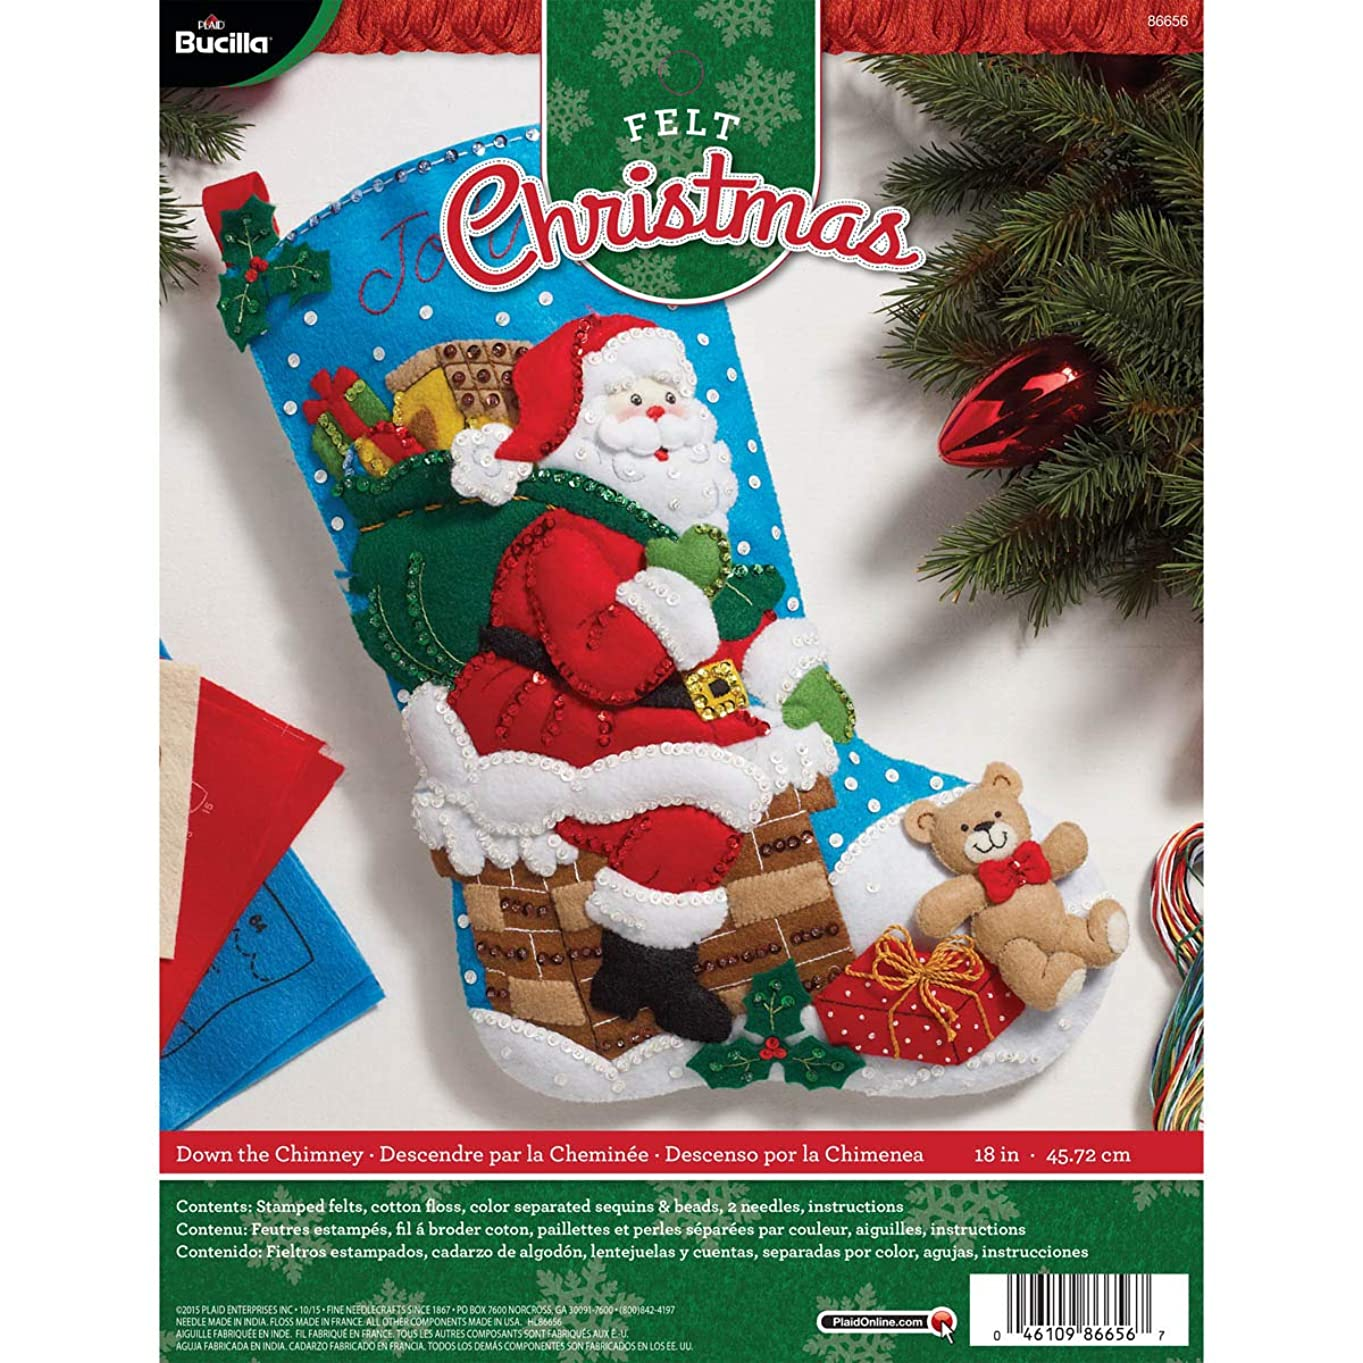 虐殺求める混乱Bucilla 18-Inch Christmas Stocking Felt Applique Kit, 86656 Down The Chimney by Bucilla